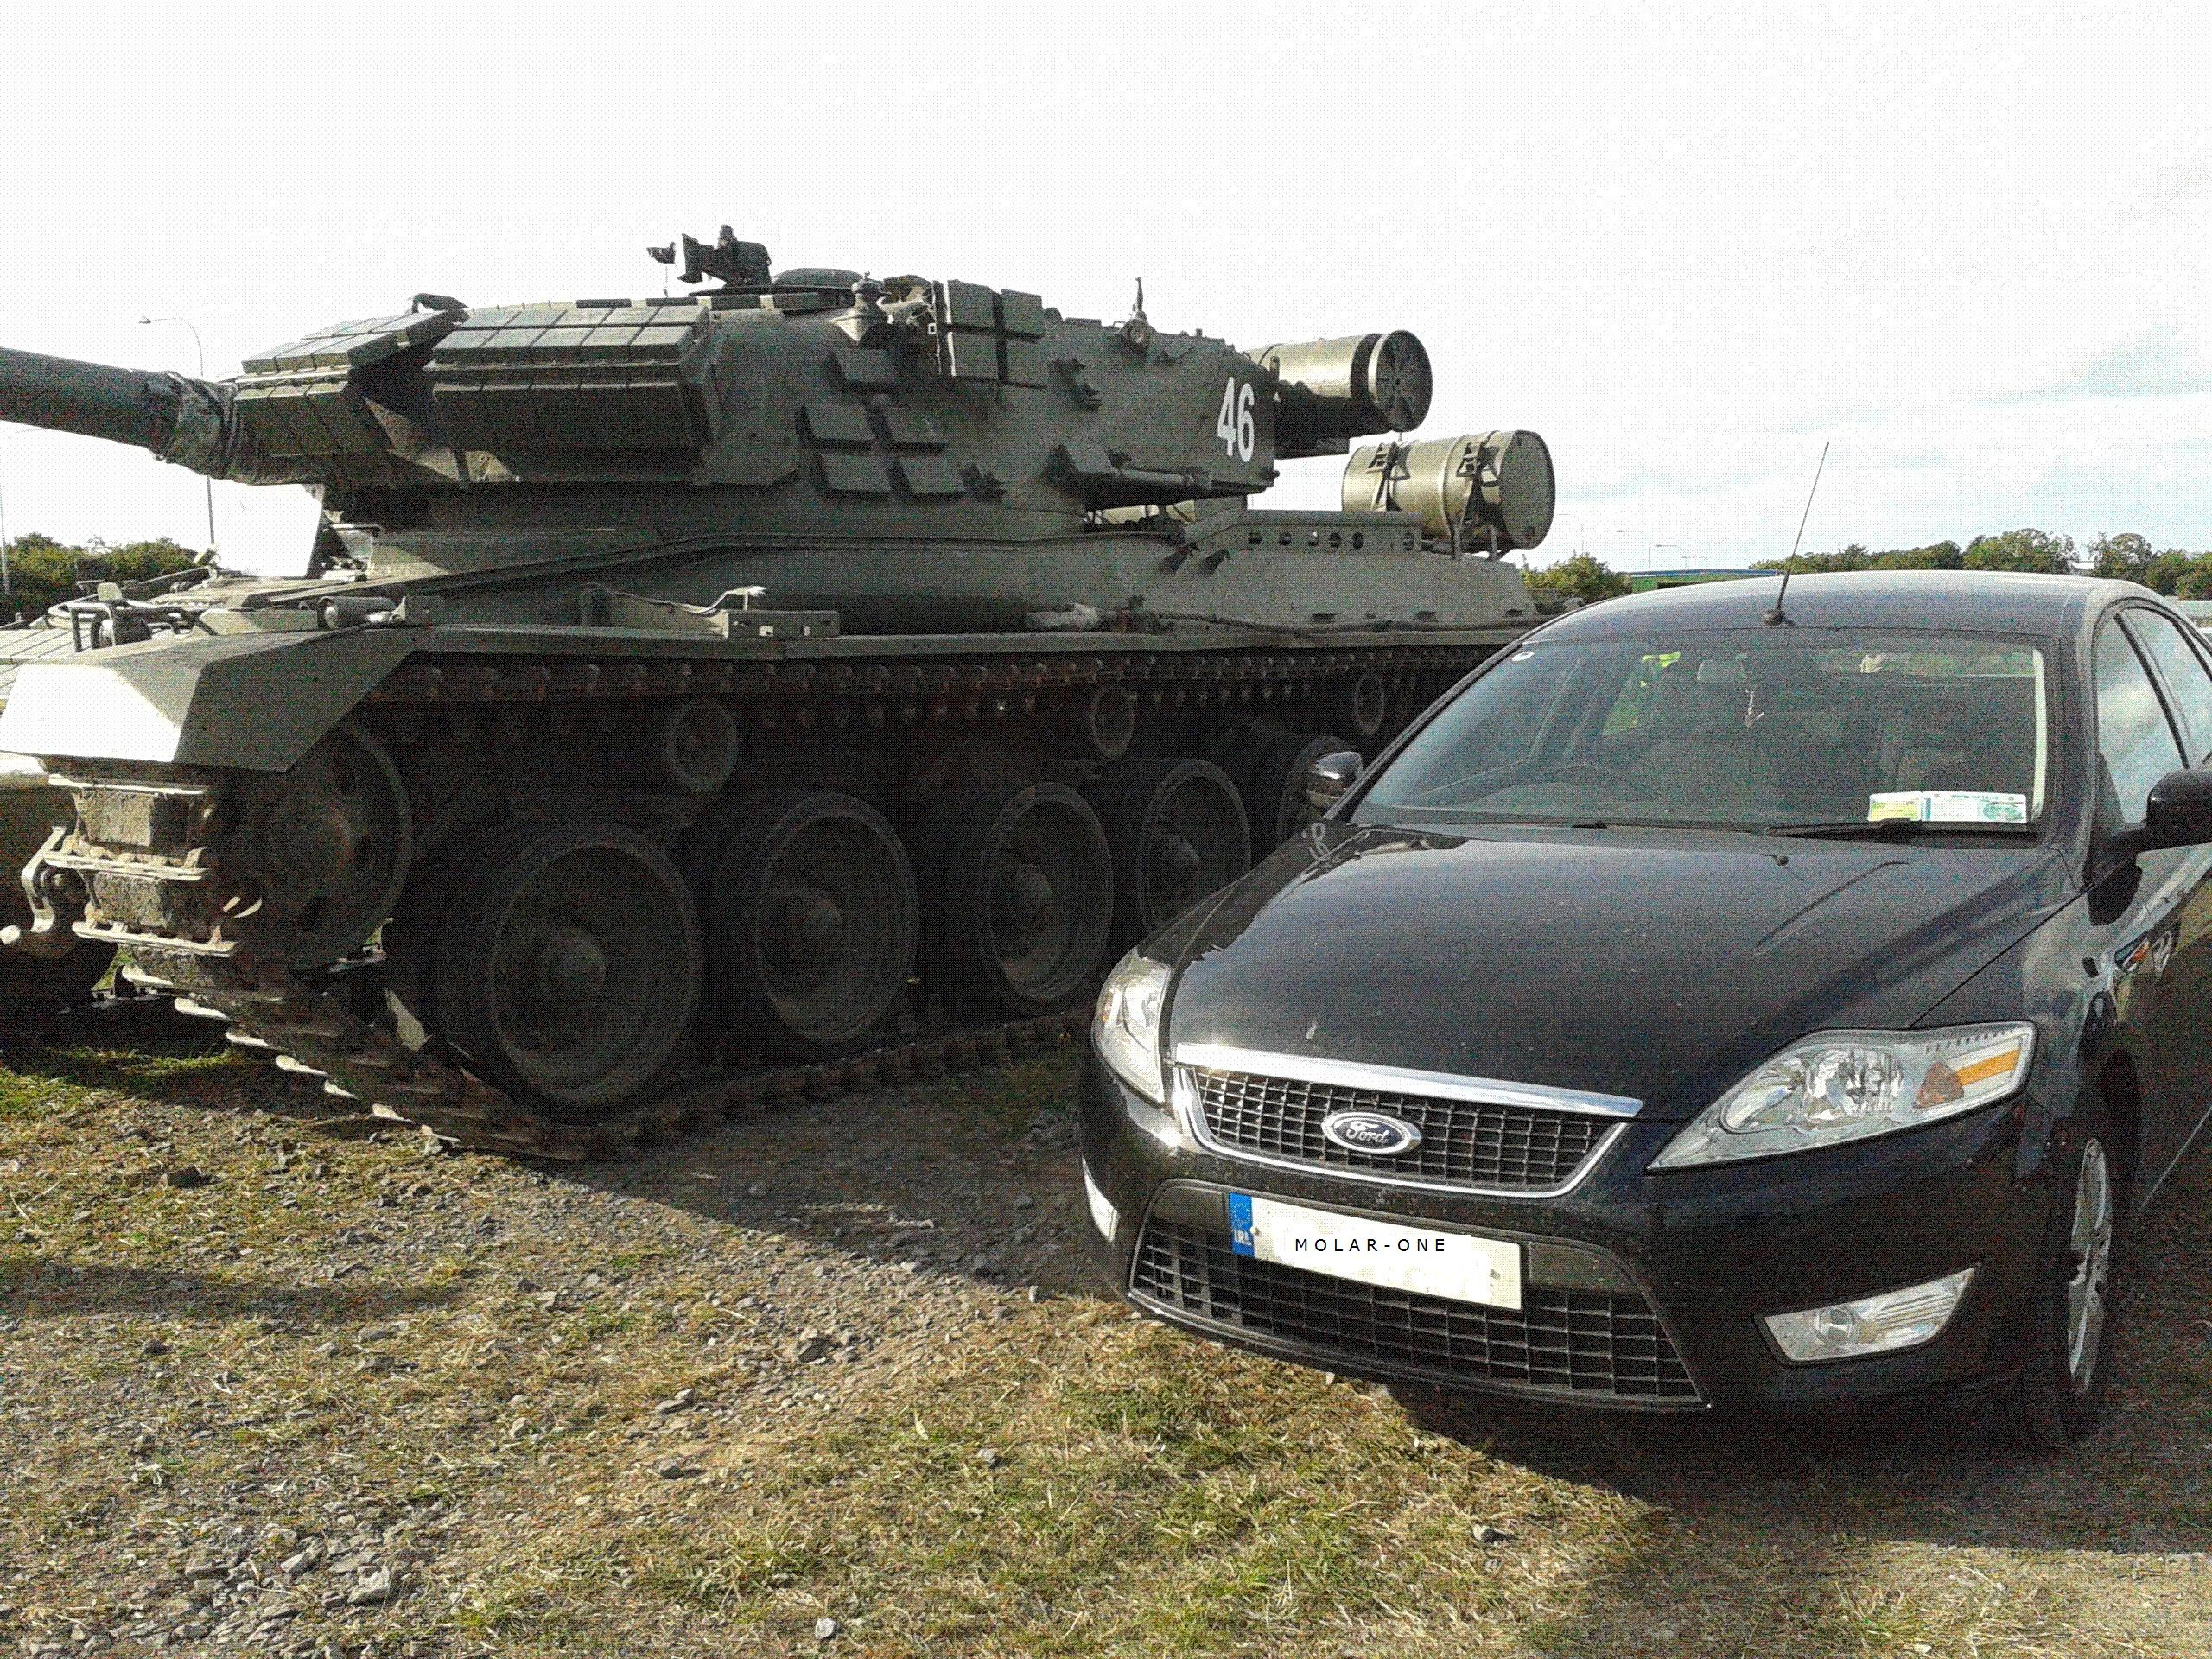 MBT v Mondeo, which will win?